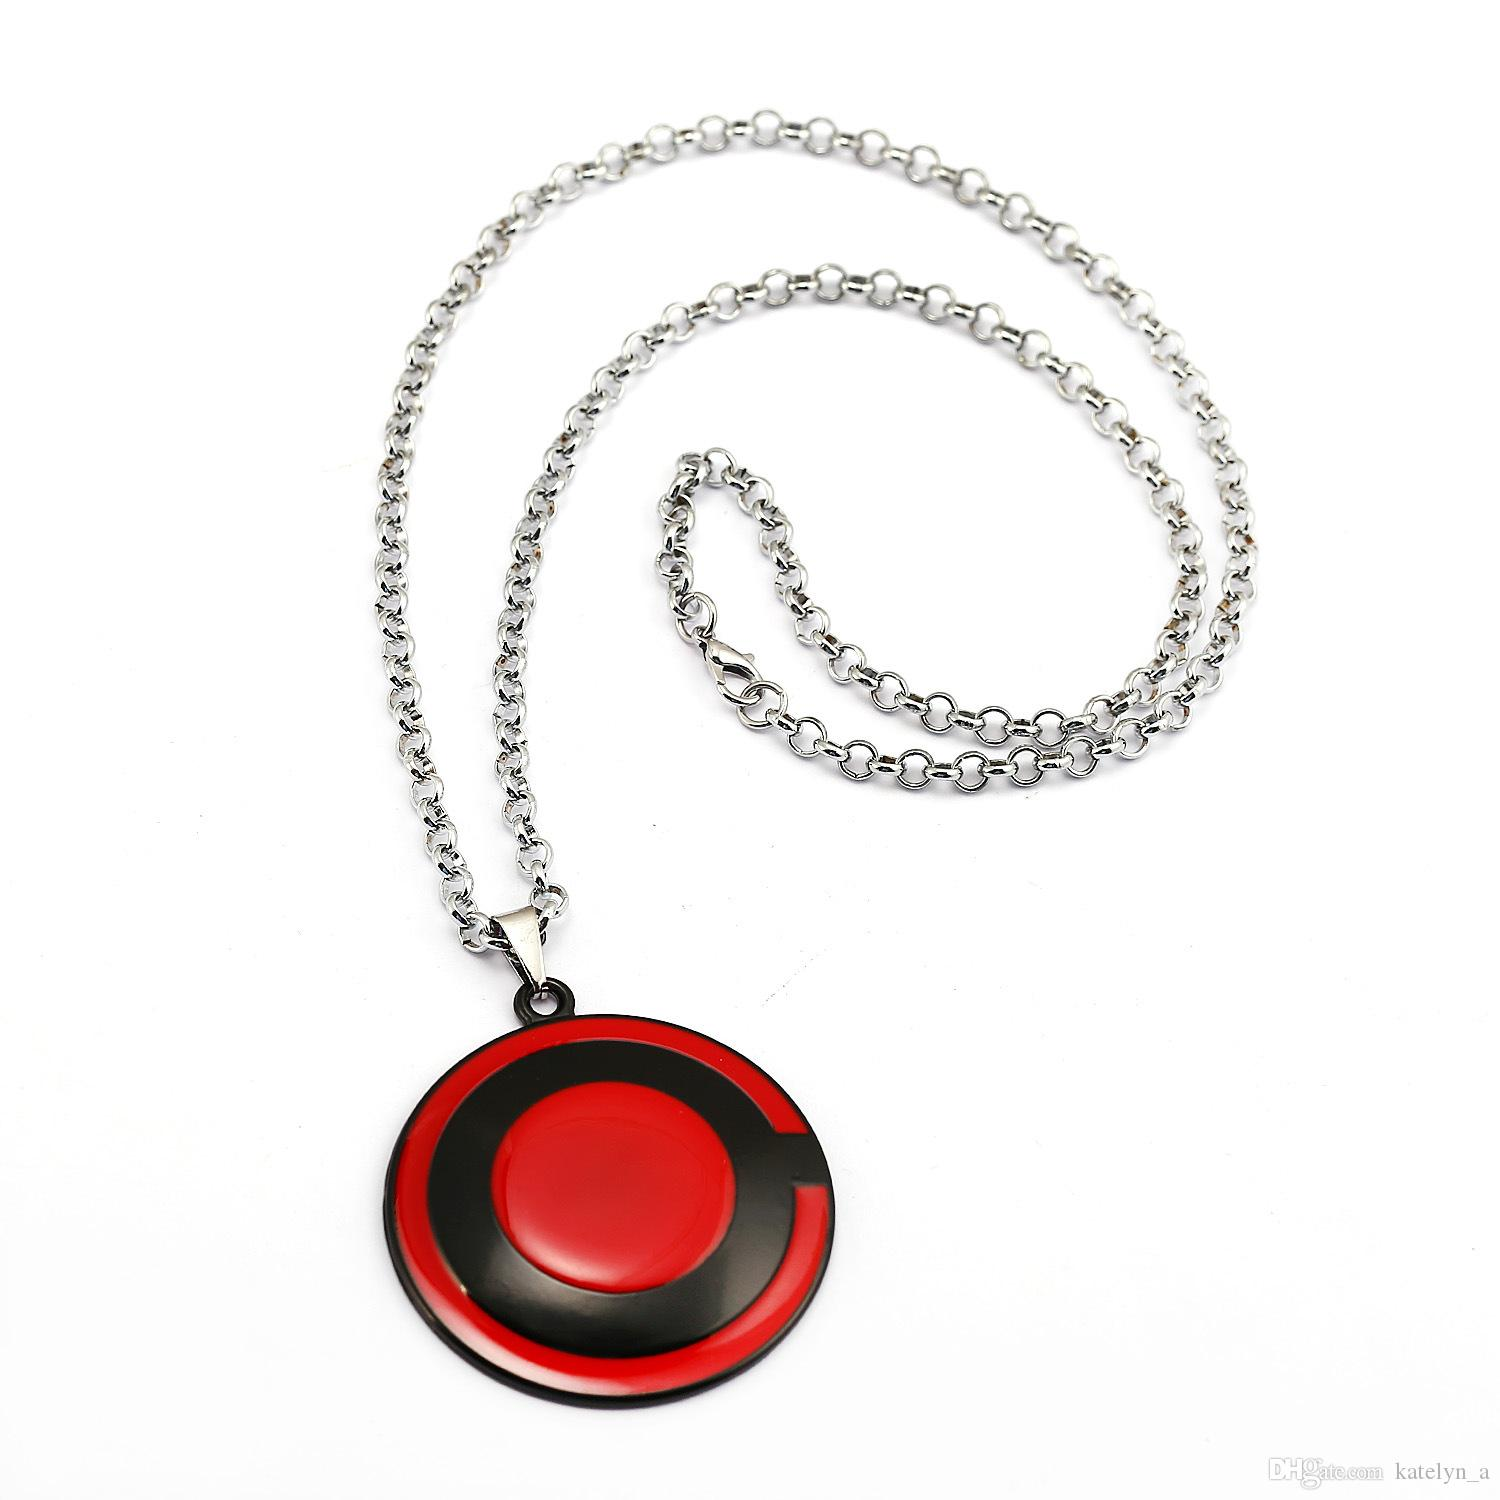 Movie Justice League Cyborg Necklace Justice Superhero Red Pendant Necklace Chocker Necklace Men Jewelry